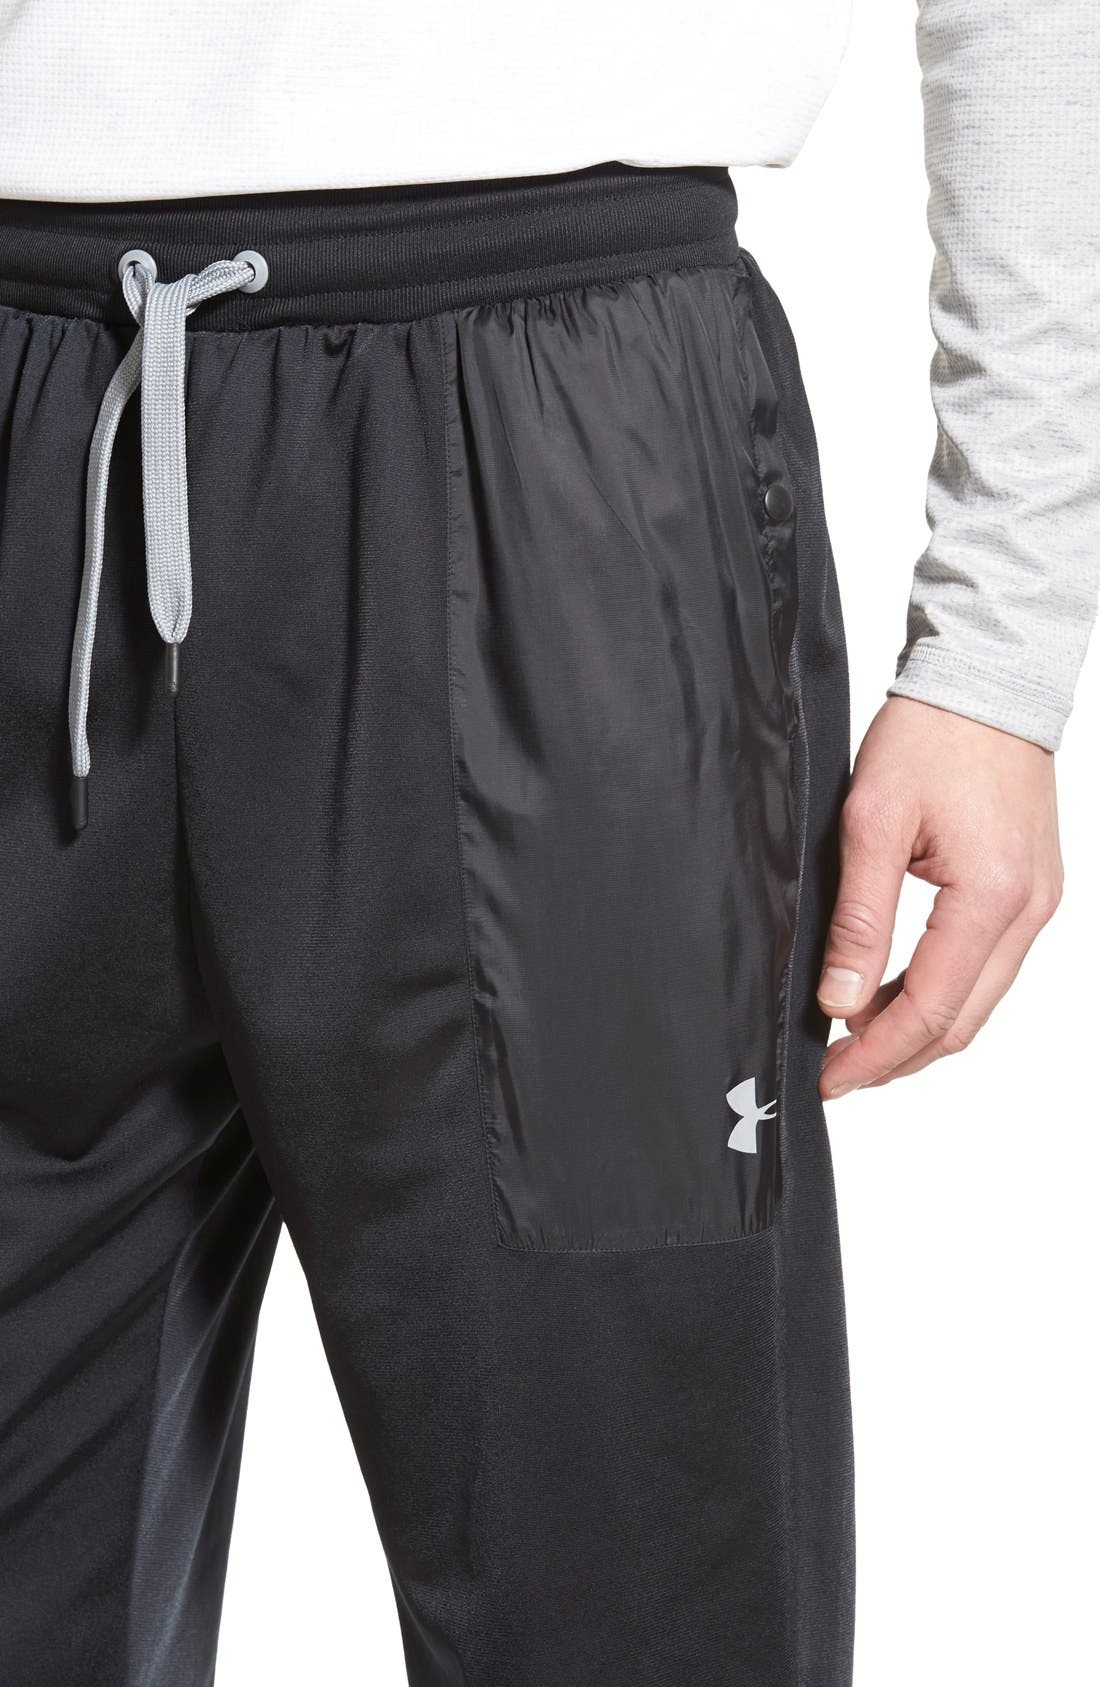 UNDER ARMOUR,                             'Diddy Bop' Moisture Wicking Training Pants,                             Alternate thumbnail 2, color,                             001